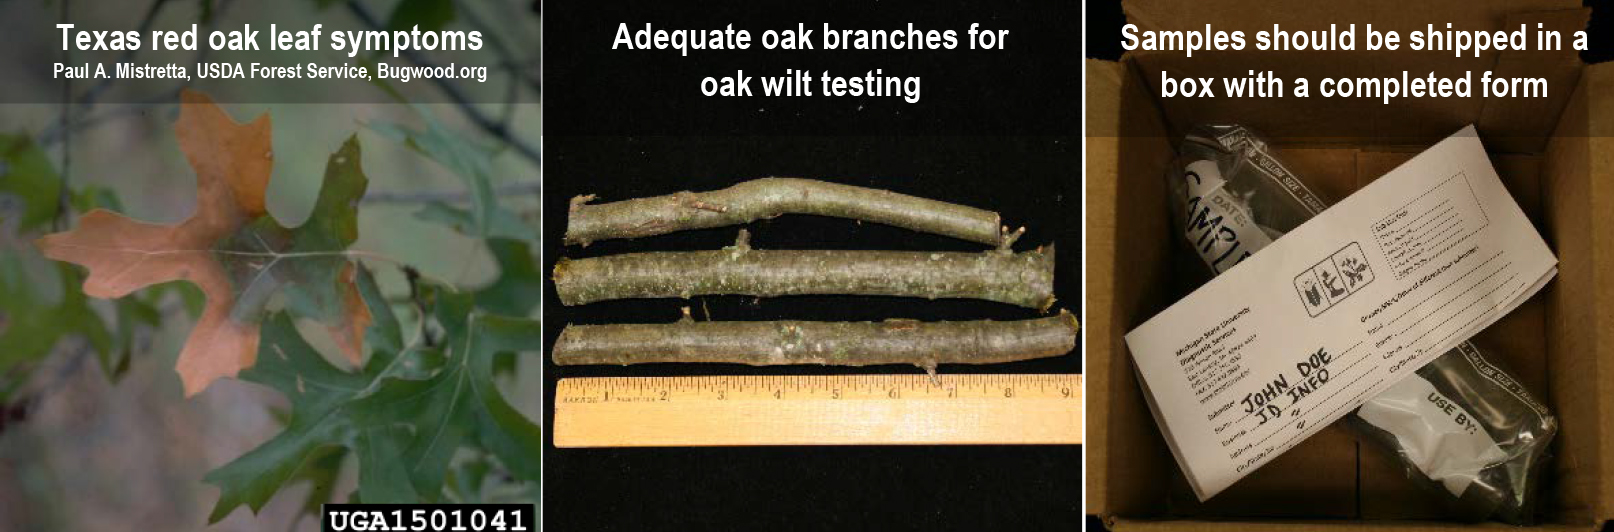 Oak wilt do's